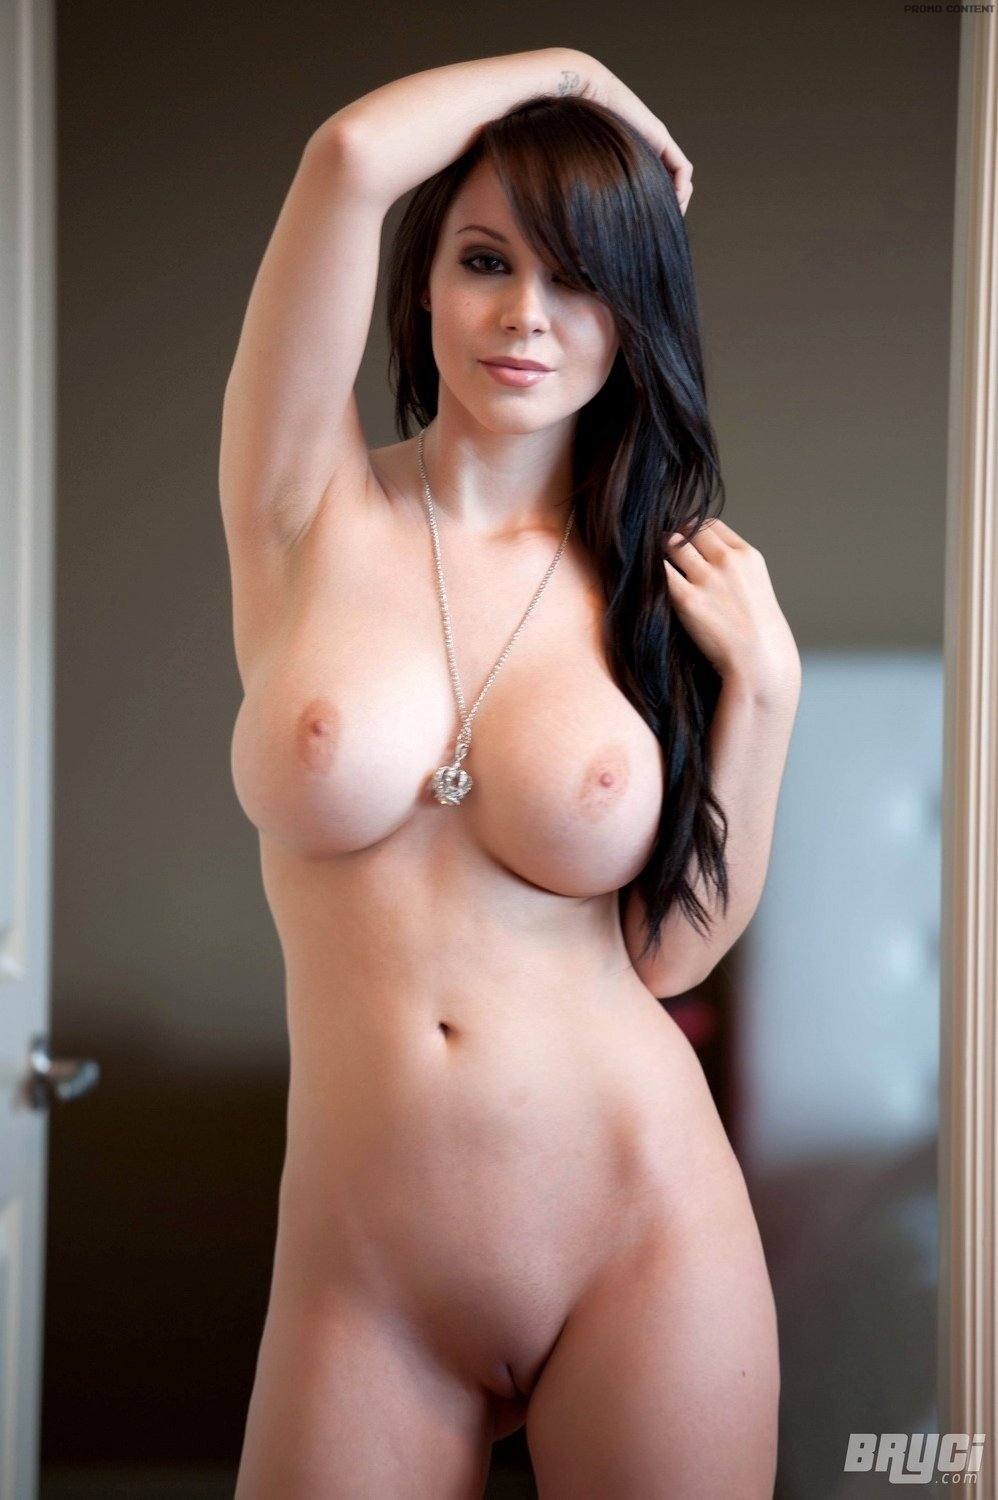 Sexy y shape naked lady pictures -